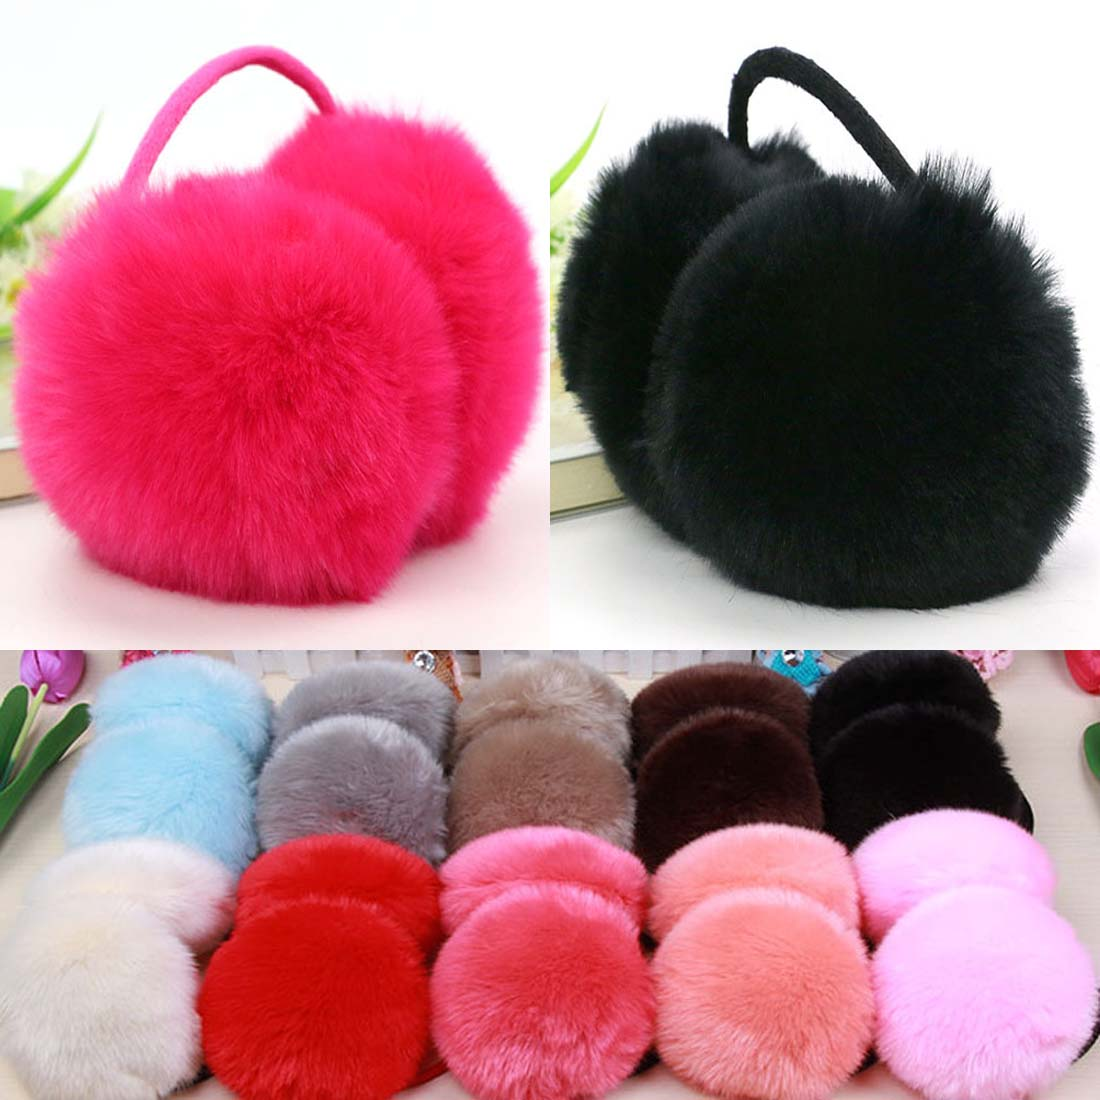 2019 Hot Sale Winter Ear Muffs Fur Ear Covers Women Men Lovers Winter Warm Hairy Ear Warmers Earmuffs Best Christmas Gifts